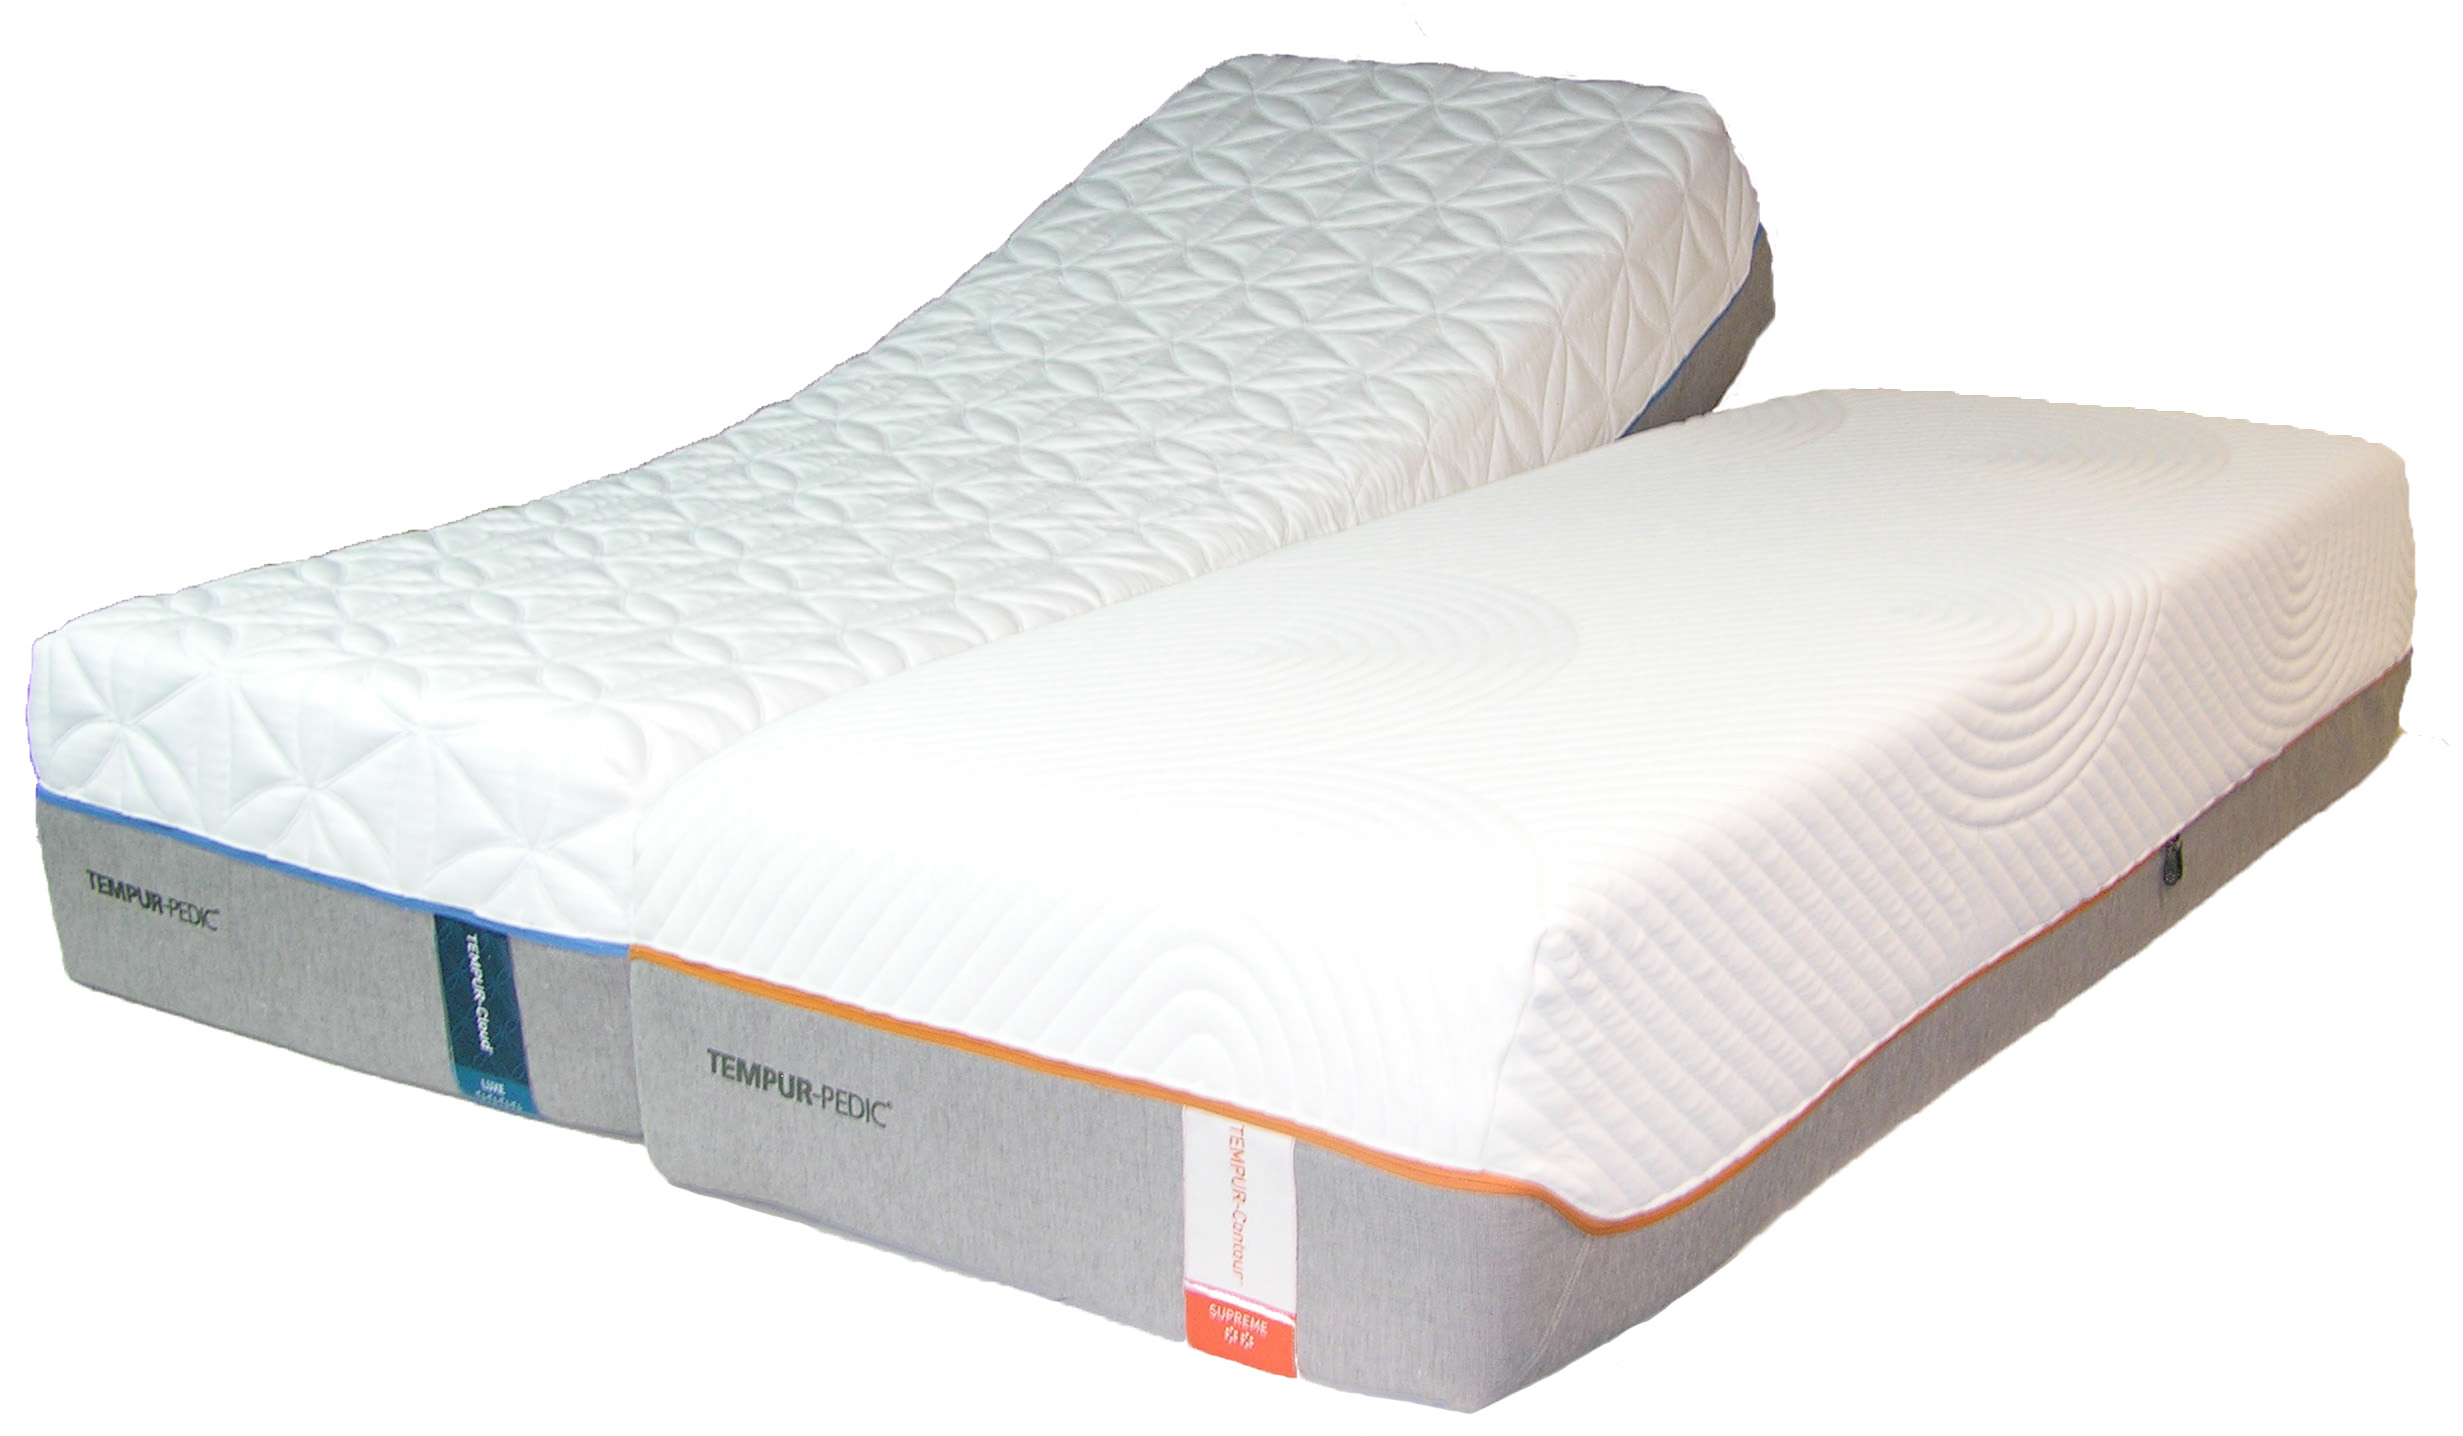 Adjustable Tempur Pedic Mattress I Bought This Tempurpedic Queen Size Adjustable Bed 8 Years